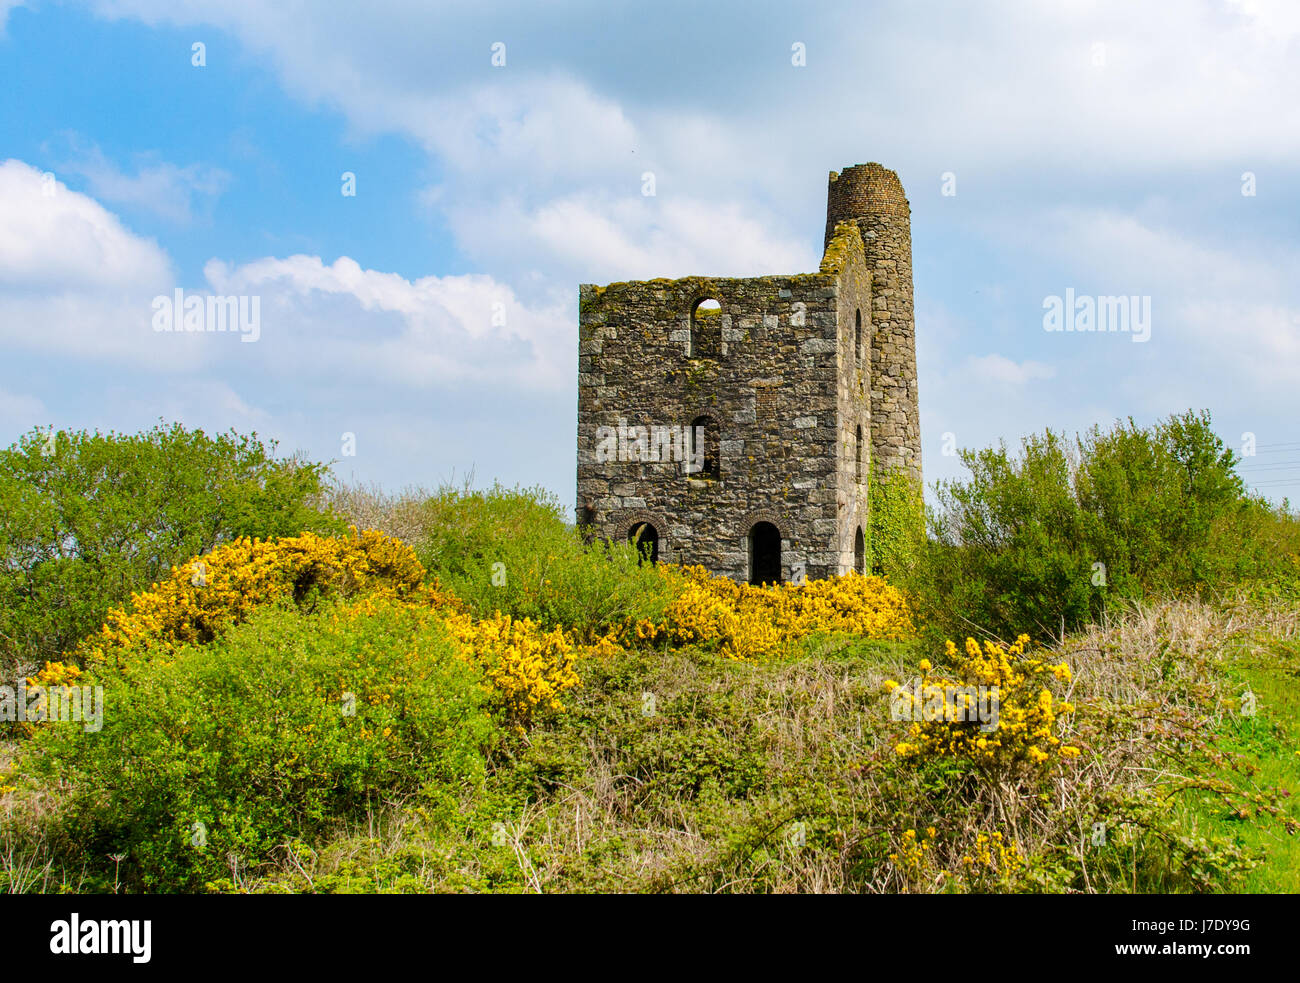 The New Stamps Engine House of Wheal Grenville near Troon, Camborne, Cornwall, UK was built around 1890 and drove - Stock Image